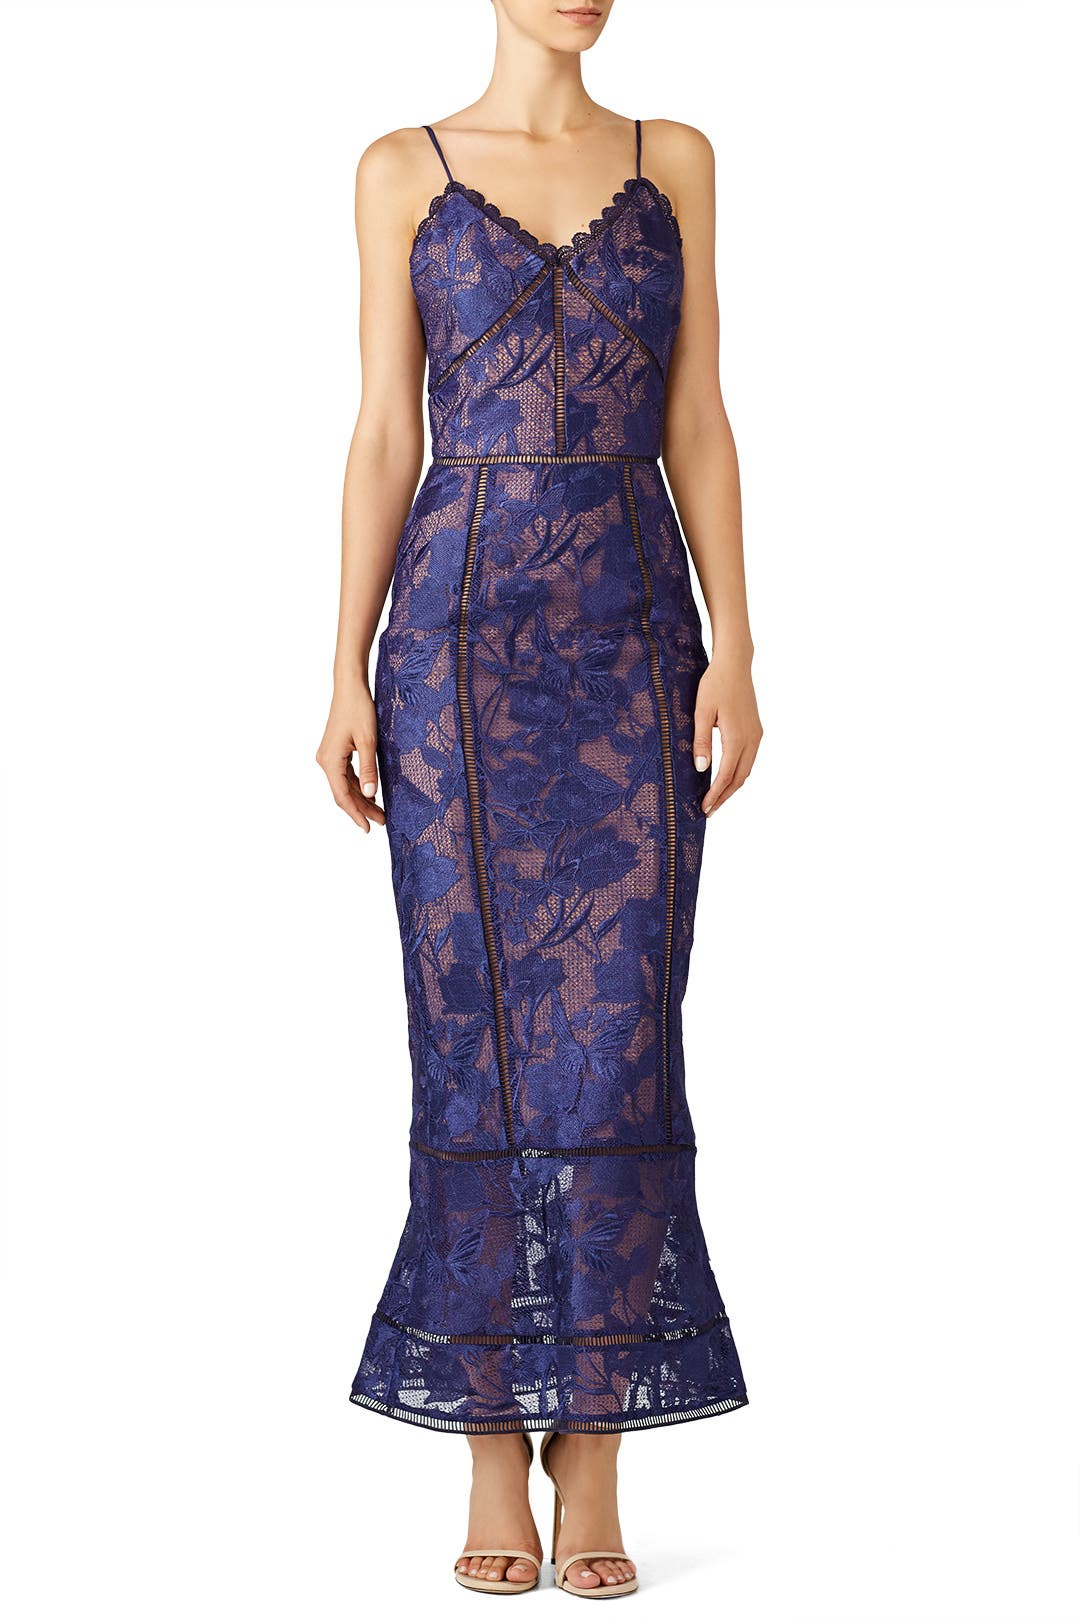 Purple Lace Dress by Marchesa Notte for $120 - $130 | Rent the Runway